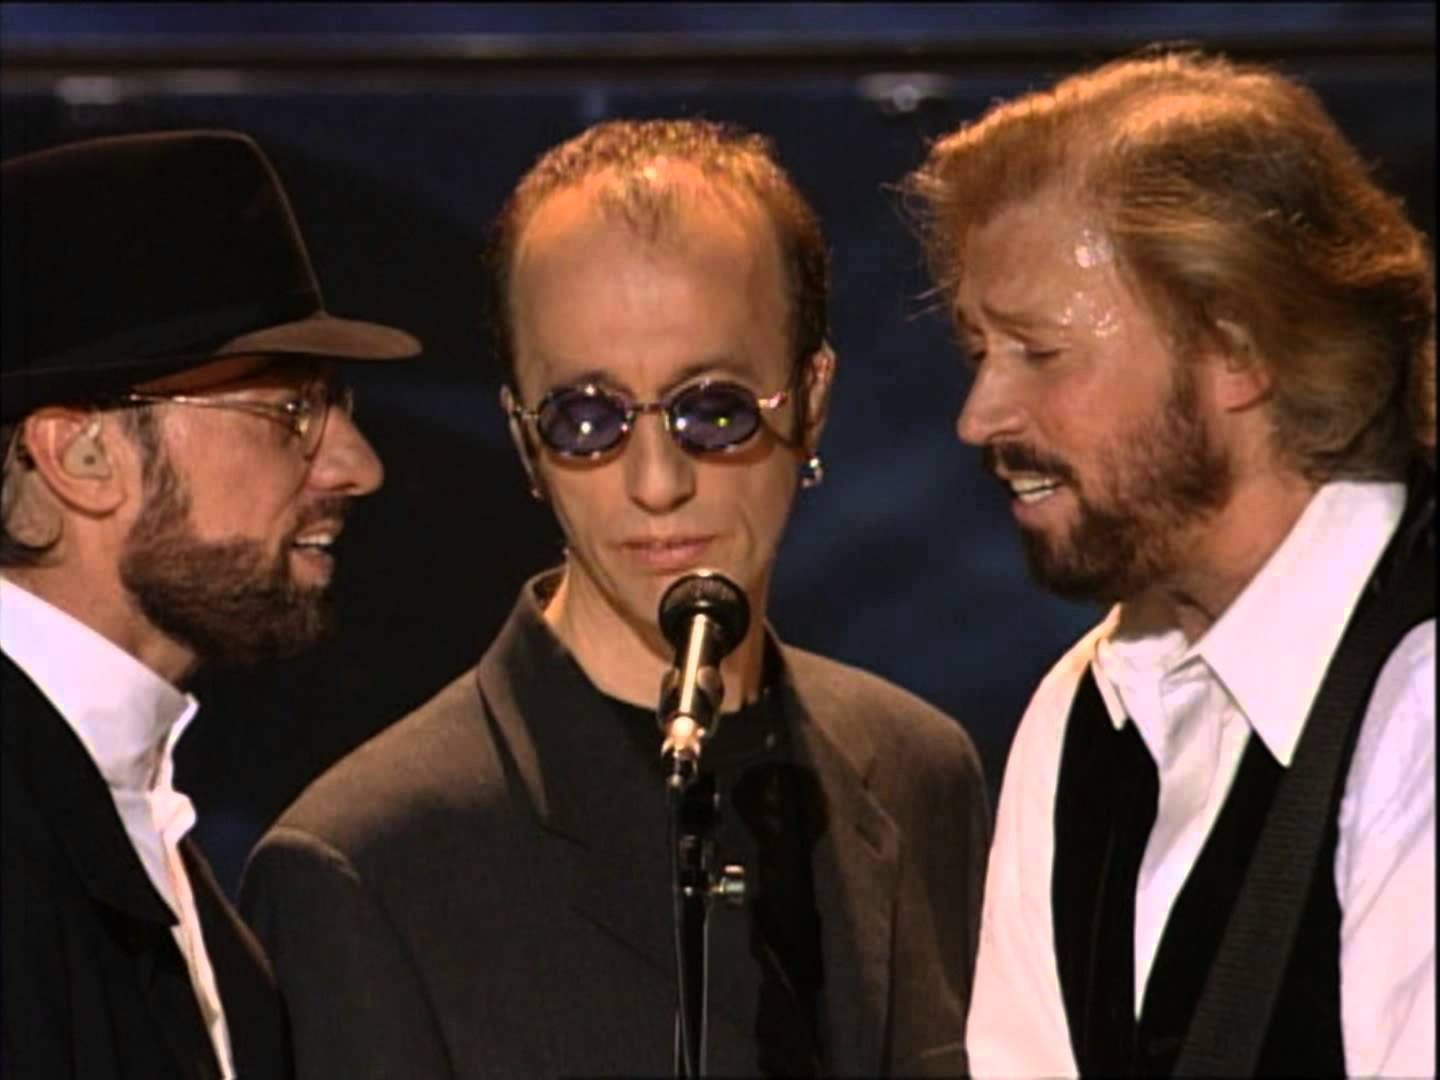 8a8d219ed7942 Bee Gees - Morning Of My Life (Live in Las Vegas, 1997 - One Night ...